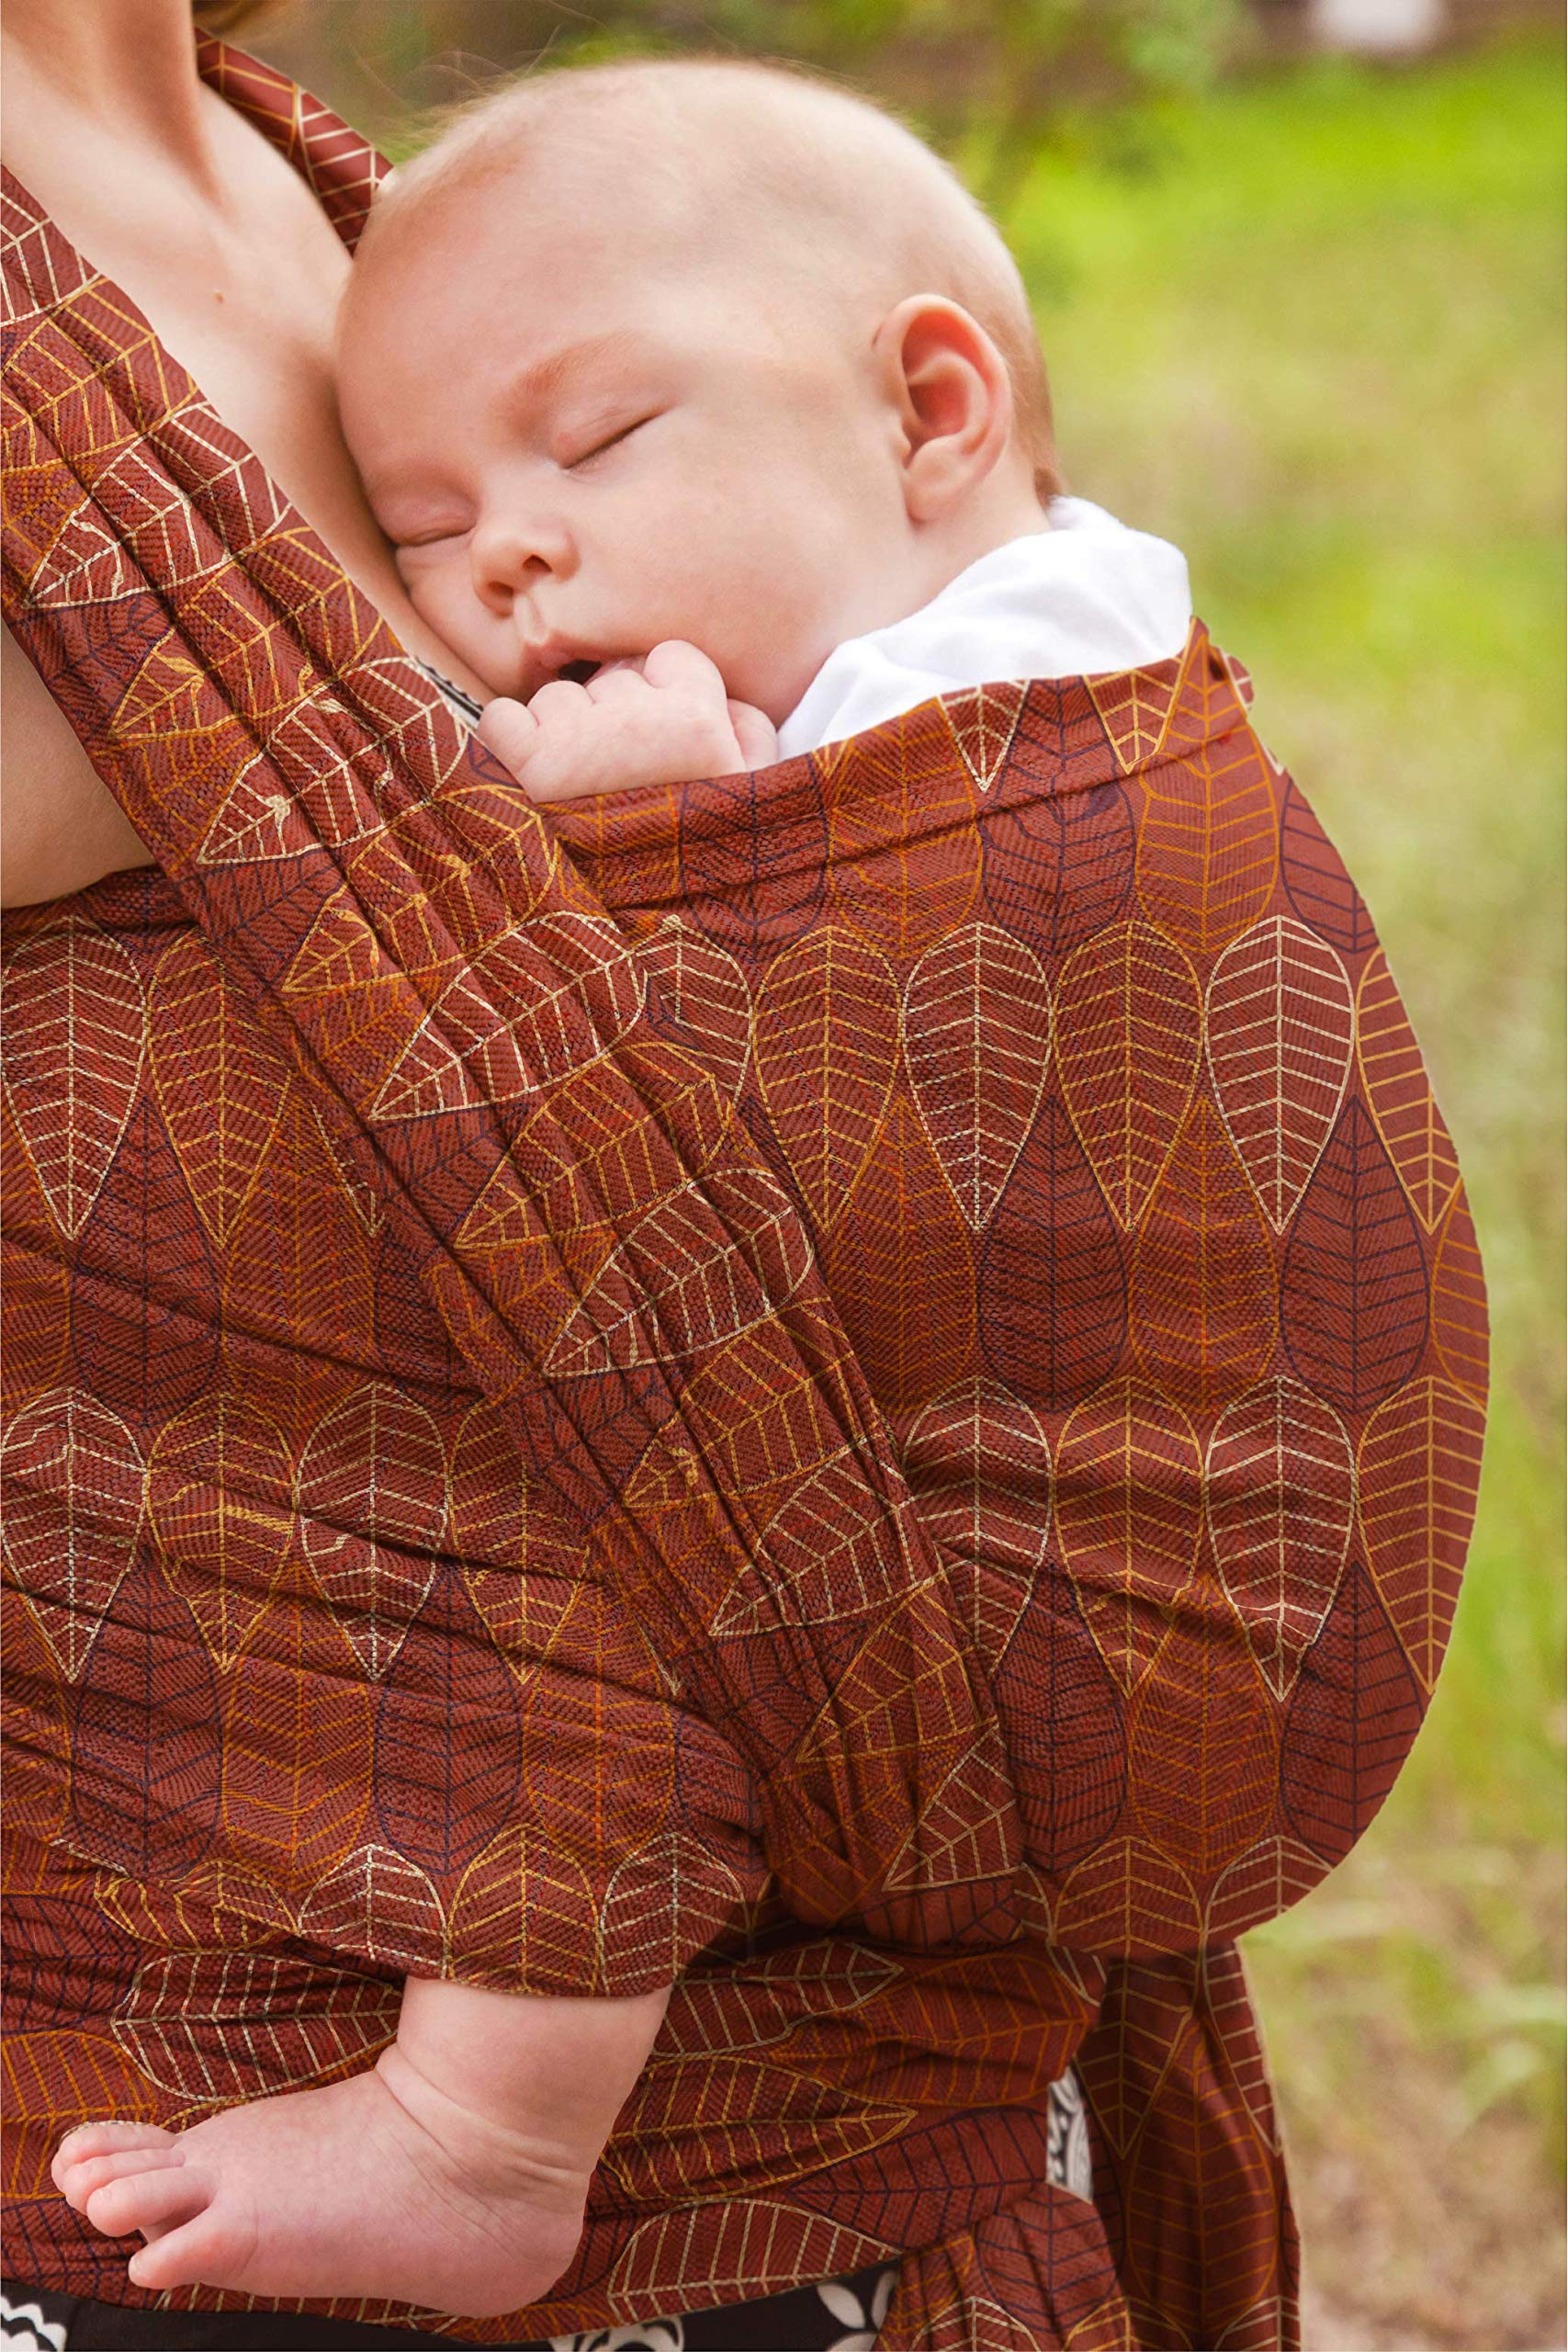 Hypoallergenic GOTS Organic Certified Cotton Baby Wrap Sling Carrier | No Antracene | Certifications: CPSIA, GOTS, CCPA, UK/EU, Safety Tested | Washing & Drying Machine | Newborn | Infant | EU Brand Piccolorganics Certifications: GOTS Organic Cotton, CCPA, CPSIA, CPC, EN 1462. EU/UK Regulation. Weight and resistance certification. For 6lb/2.7kg - 35 lbs/16kg - For Newborns up to 2 years old. European Brand. 520cm x 55cm The PiccolOrganics organic baby wraps are manufactured with premium materials to ensure years of use, through repeated washes and drying cycles. Even better, you can use it in the Washing and Drying machine! 3